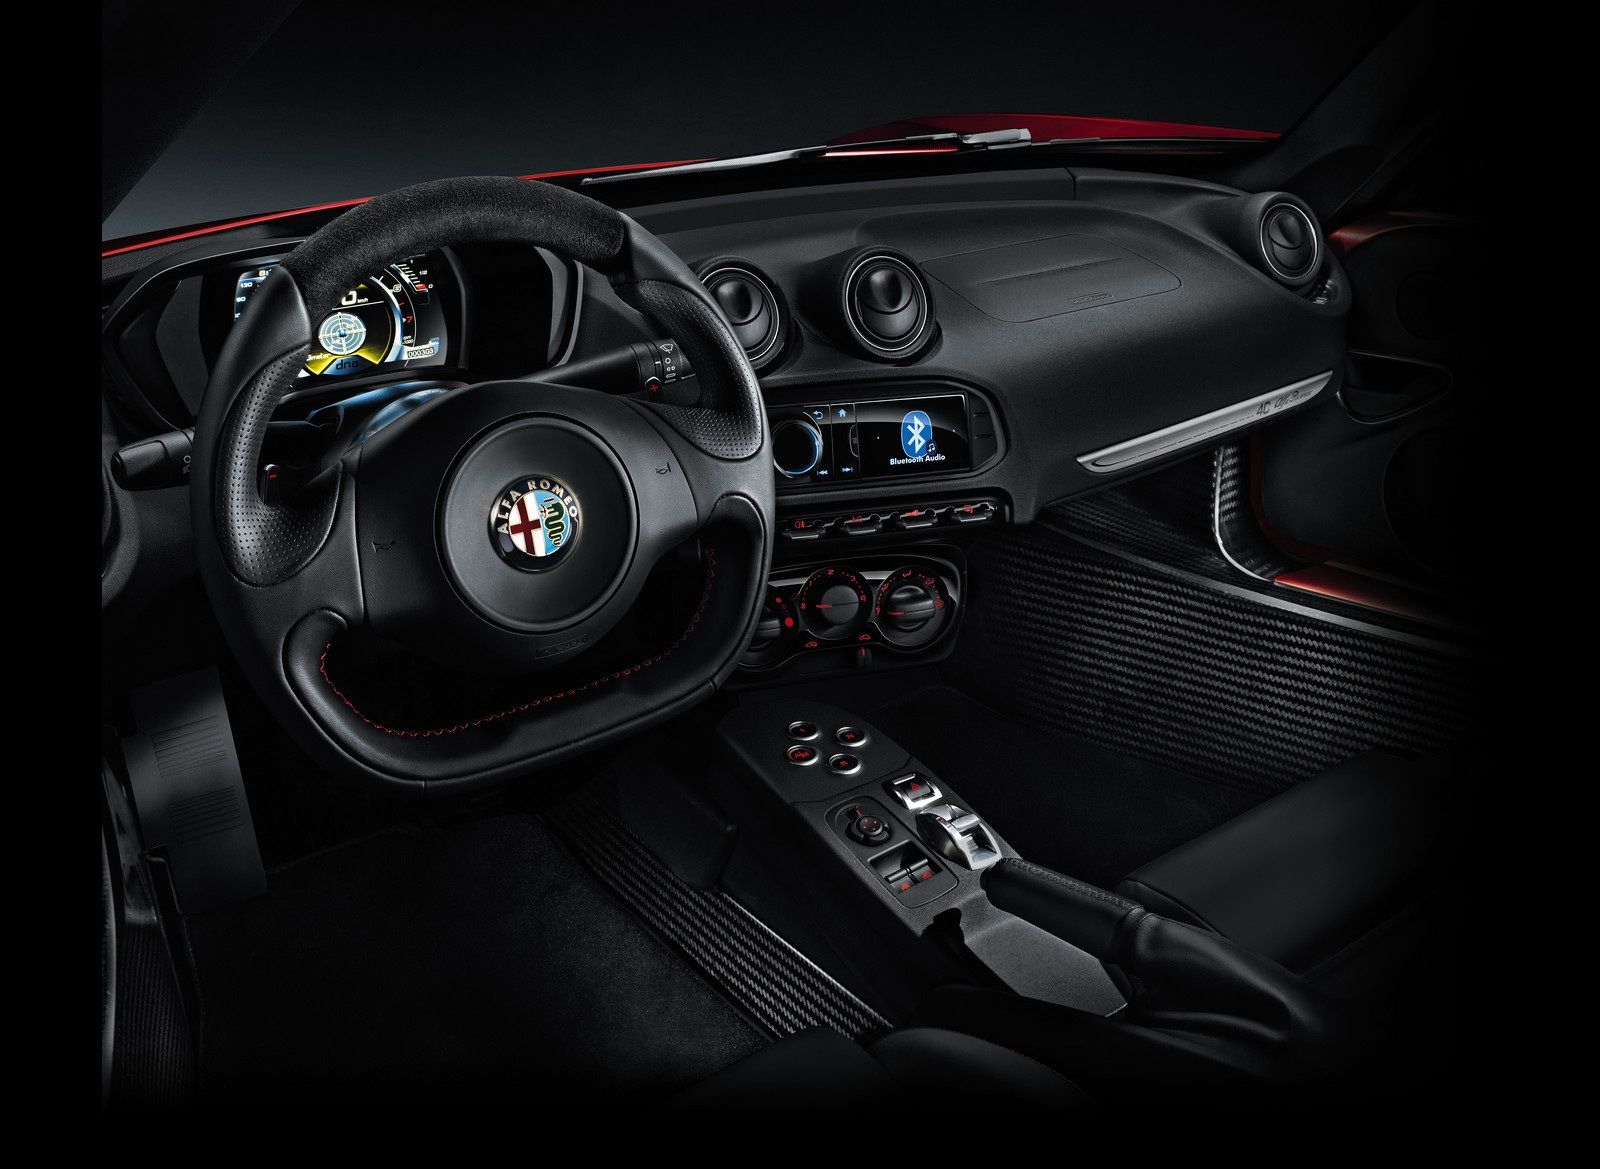 2014 Alfa Romeo 4C Interior and Dashboard